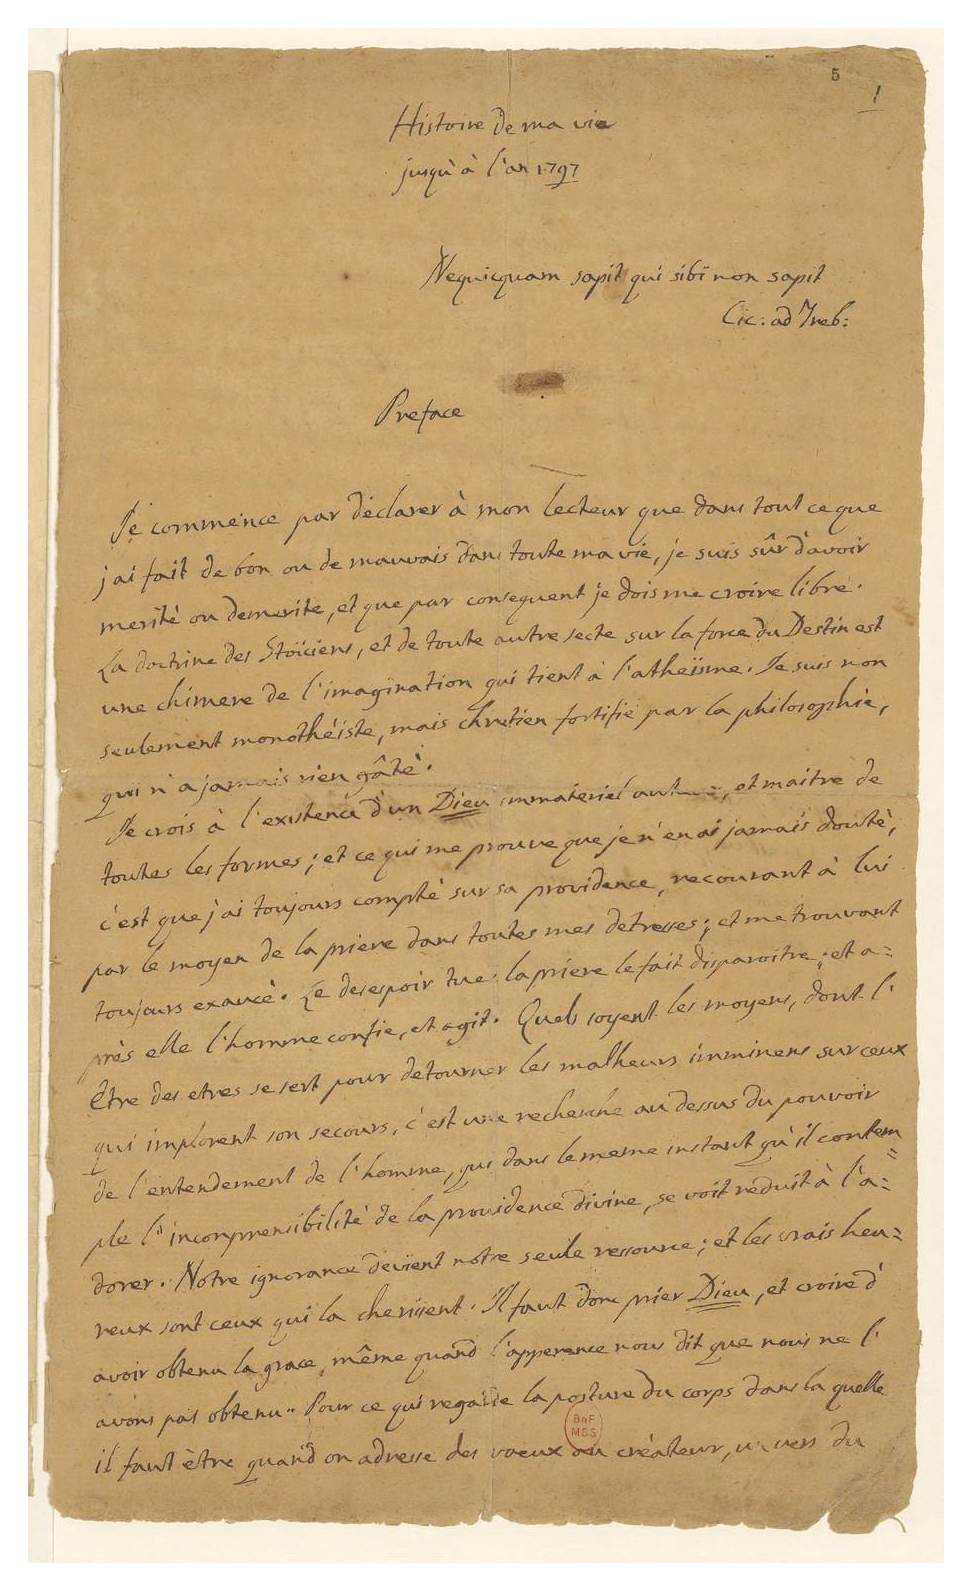 La premi�re page du manuscrit de Casanova